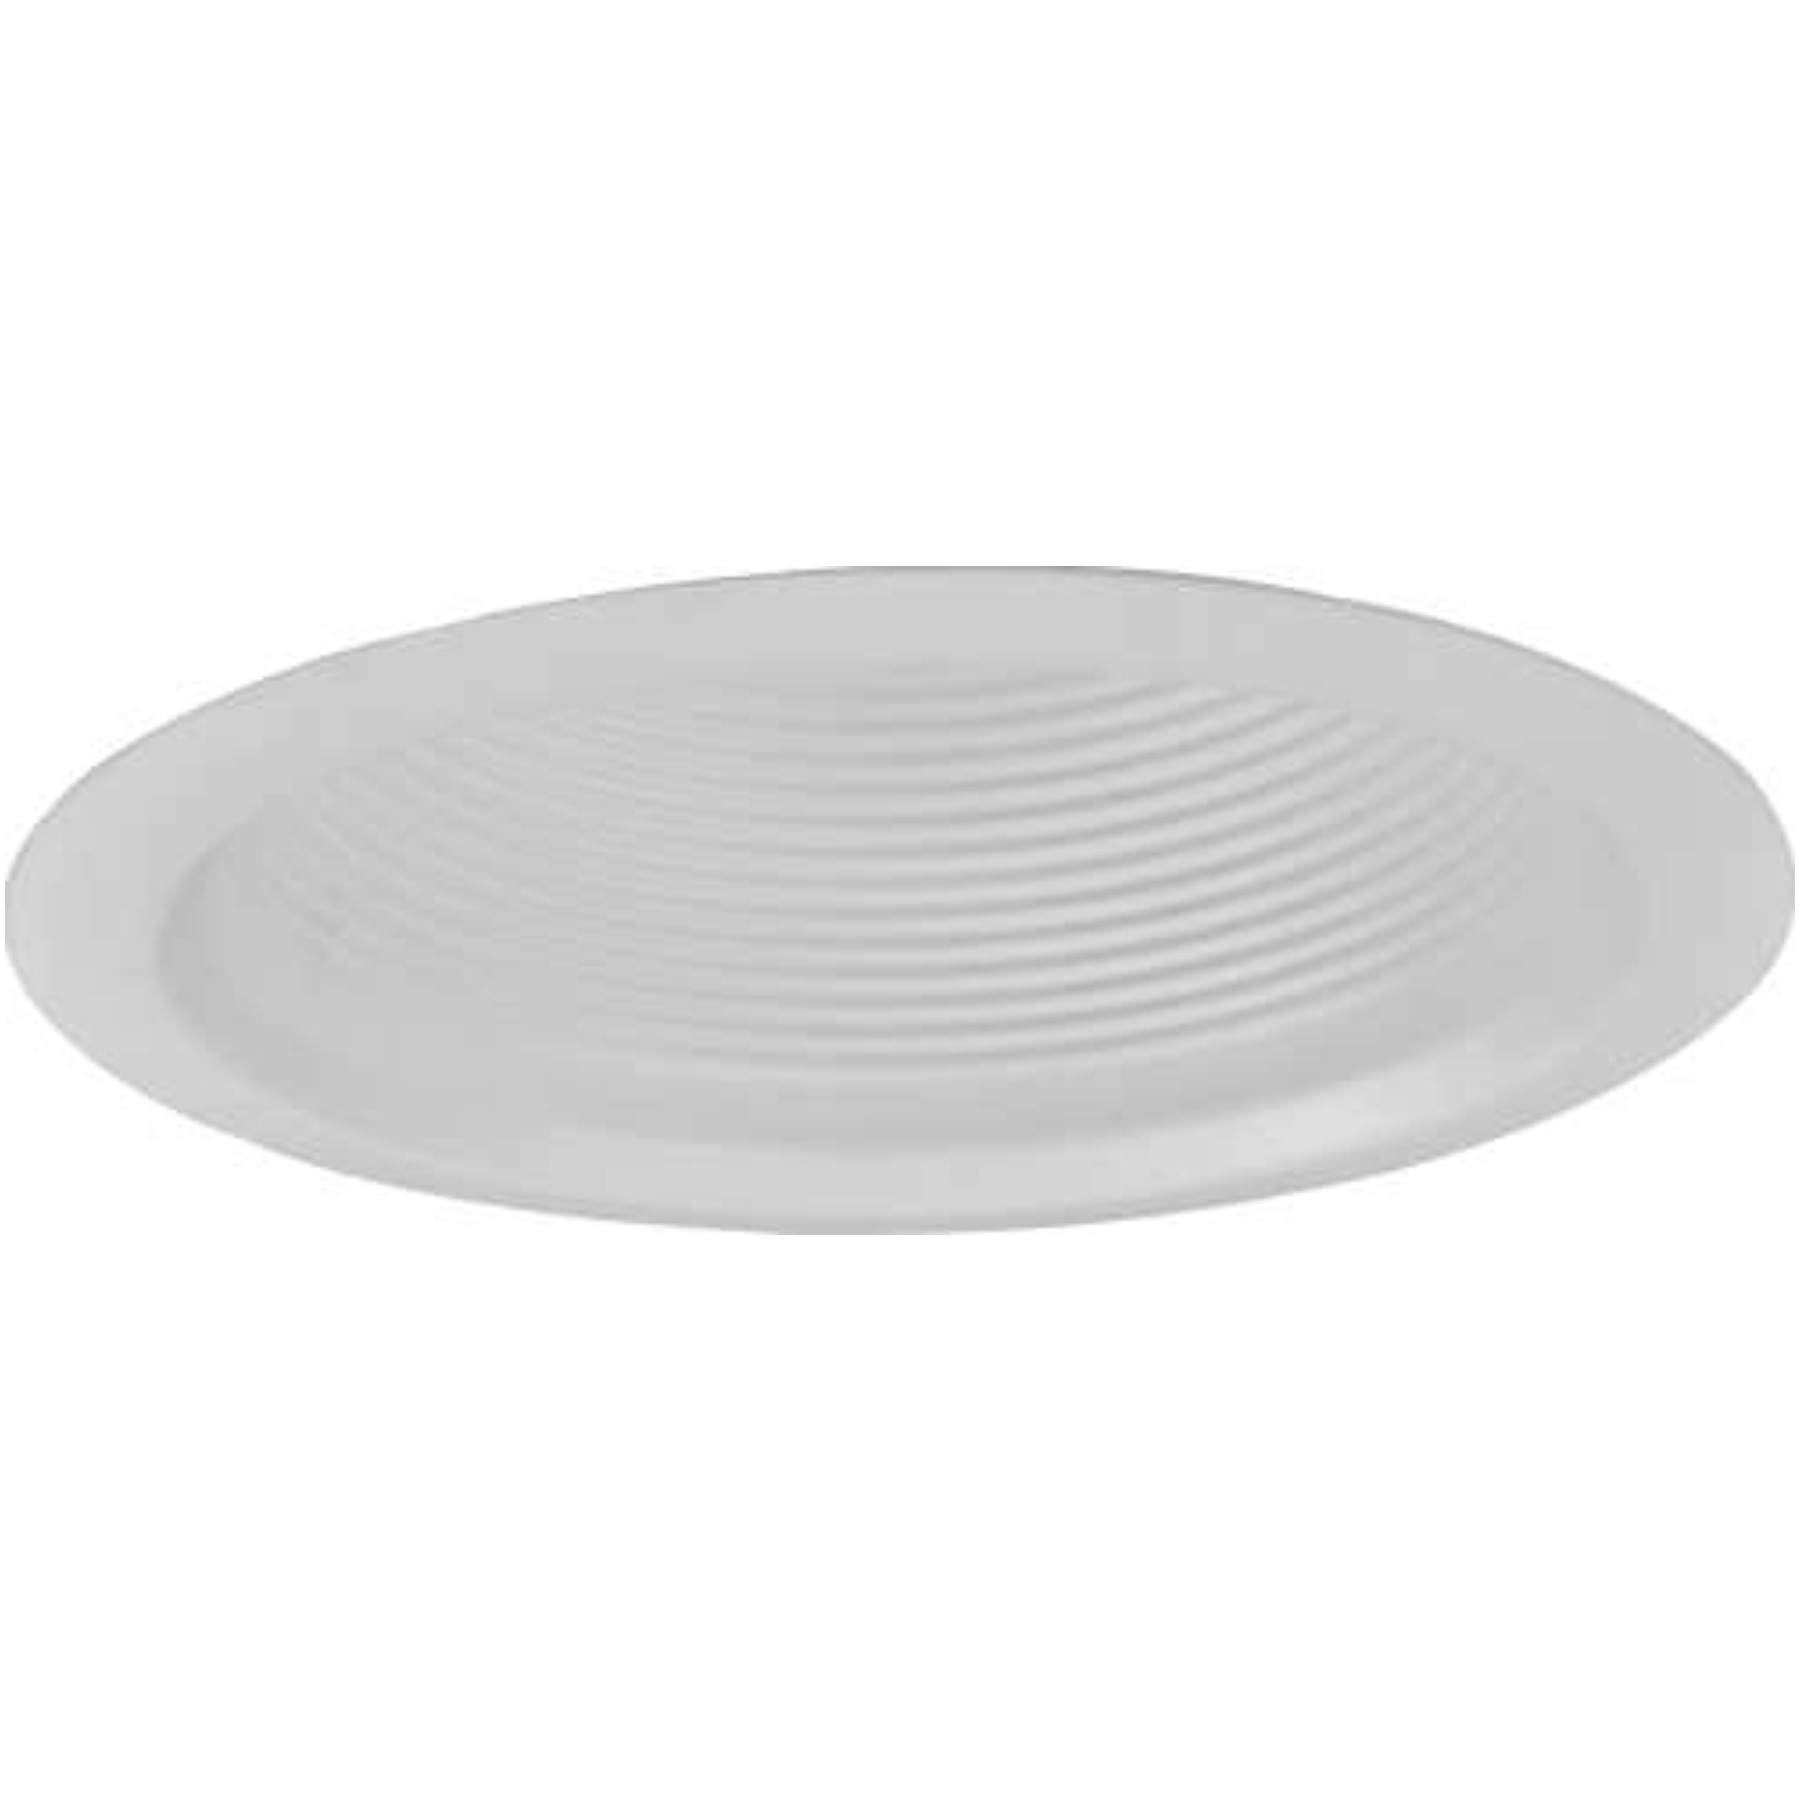 MONUMENT RECESSED LIGHTING 5 IN. WHITE METAL BAFFLE WITH WHITE METAL TRIM RING